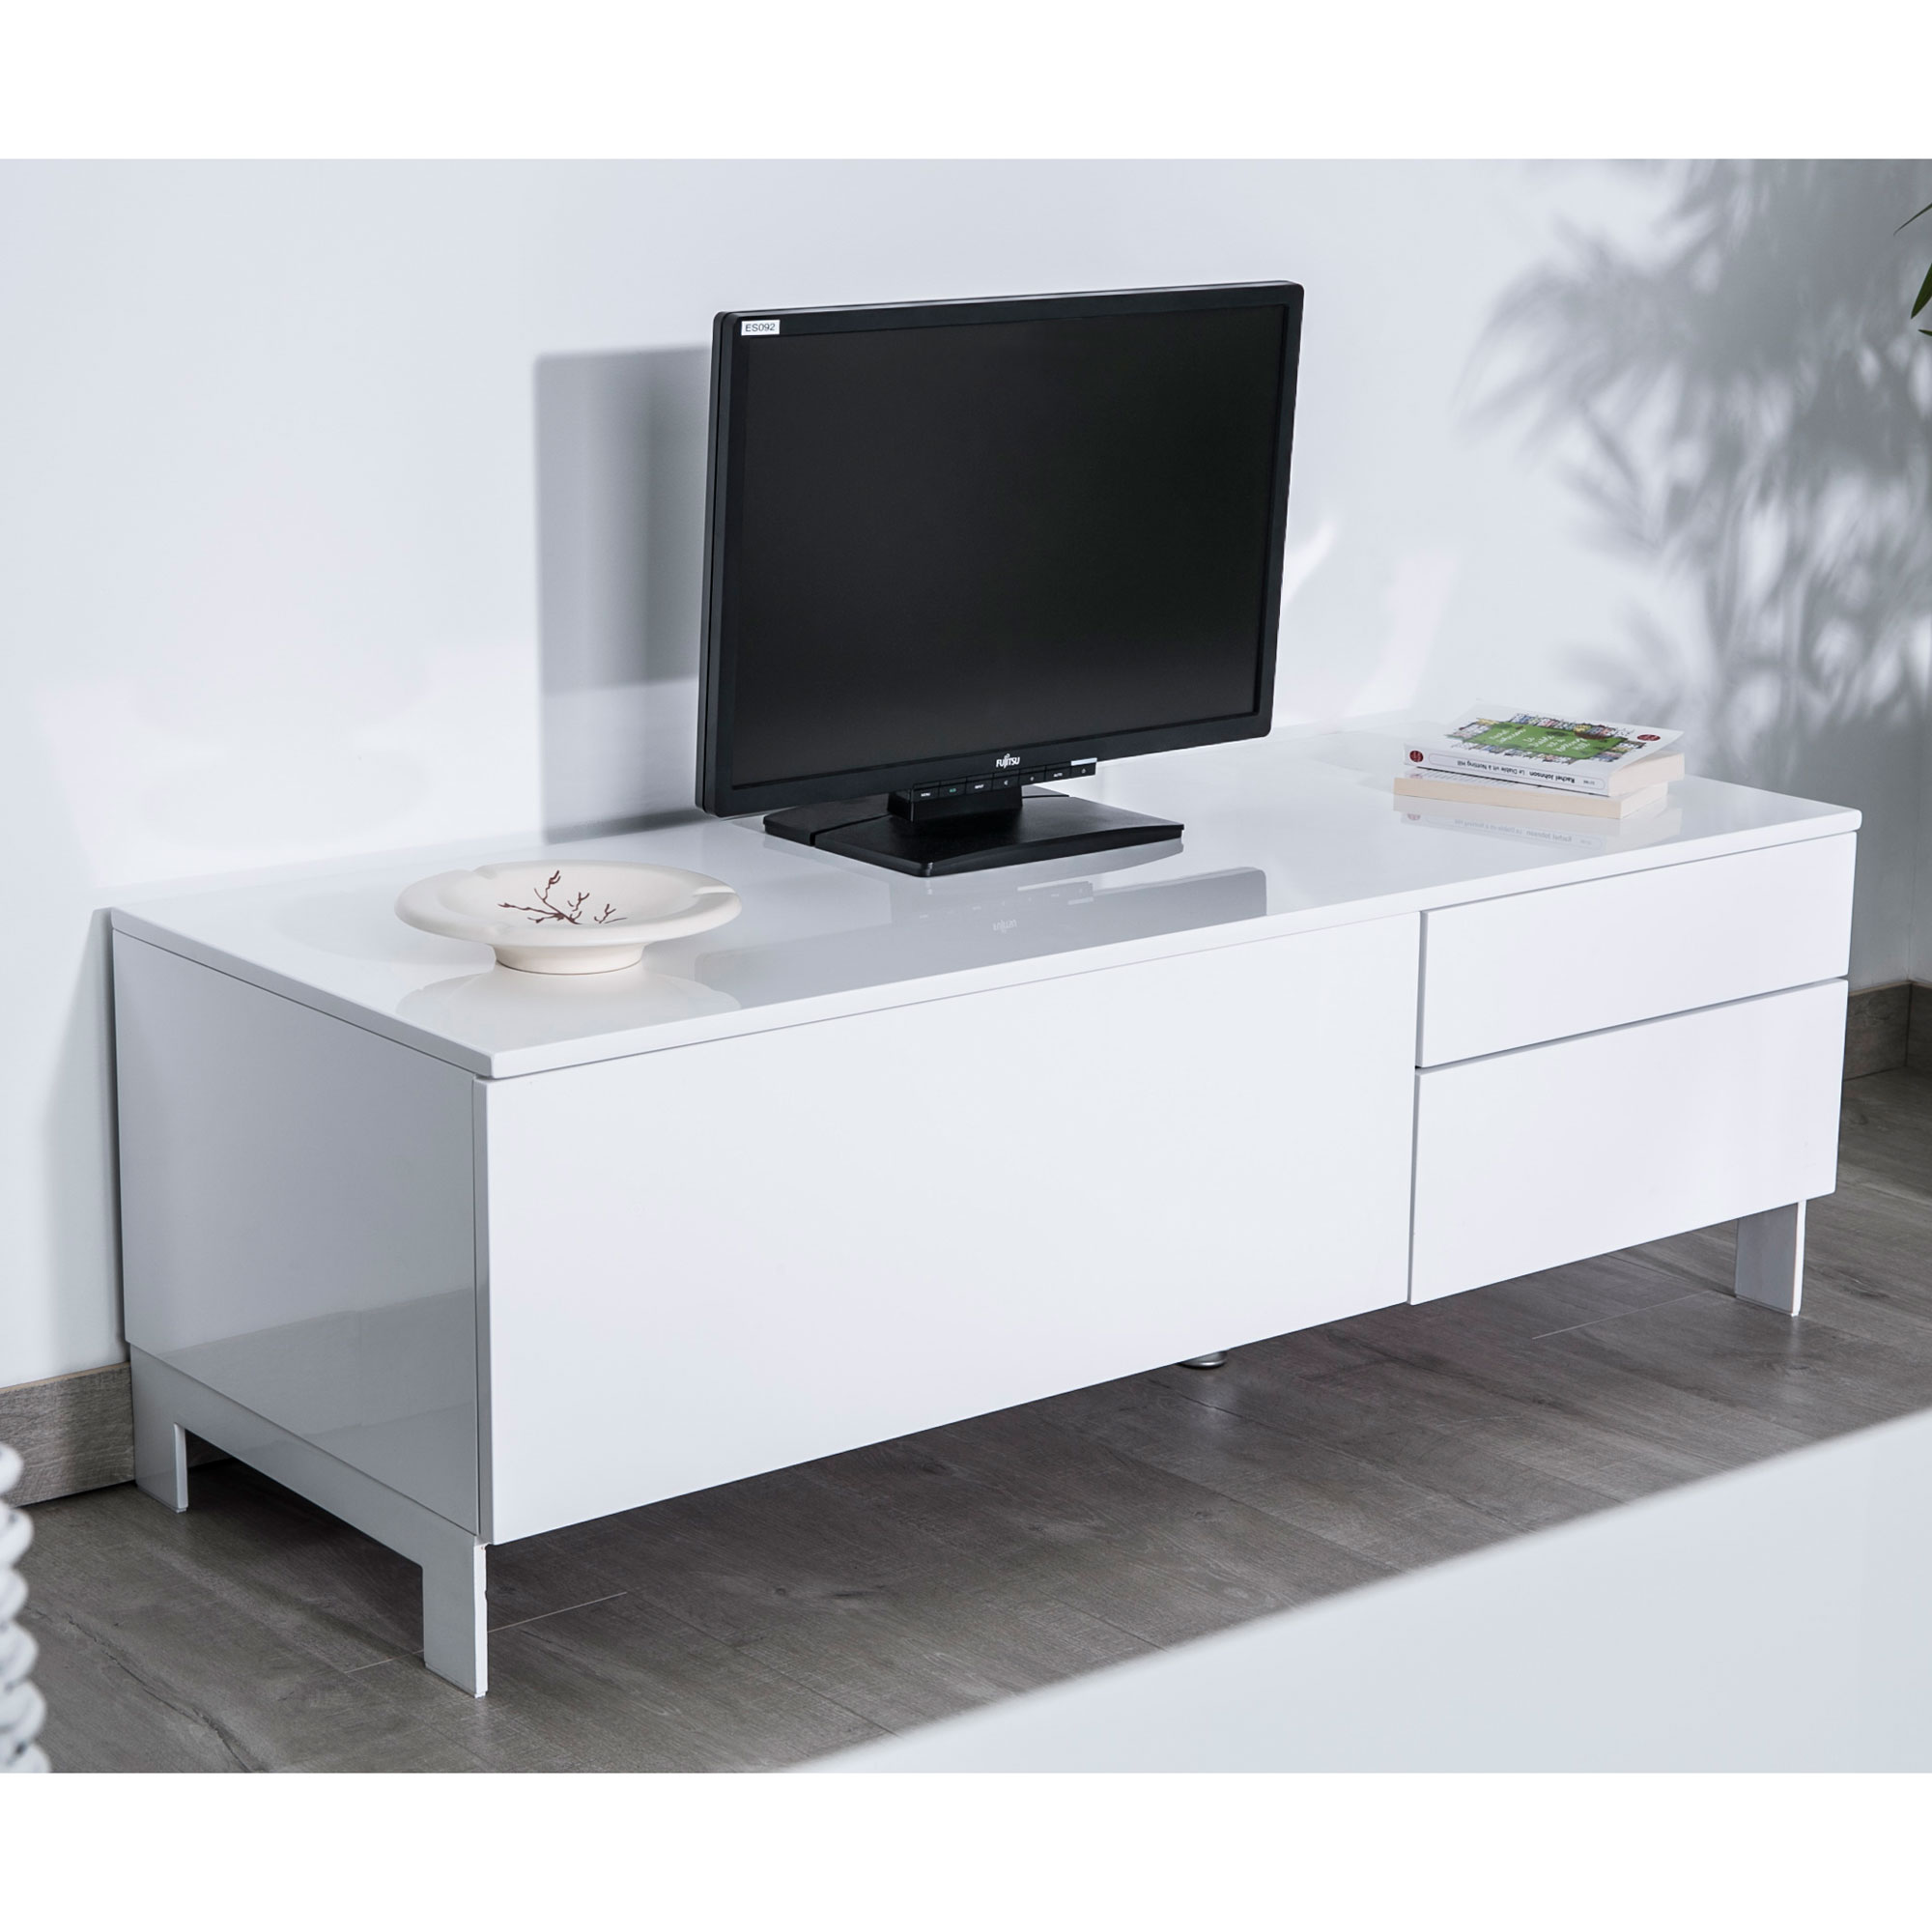 meuble tv bois et blanc laqu id es de d coration. Black Bedroom Furniture Sets. Home Design Ideas